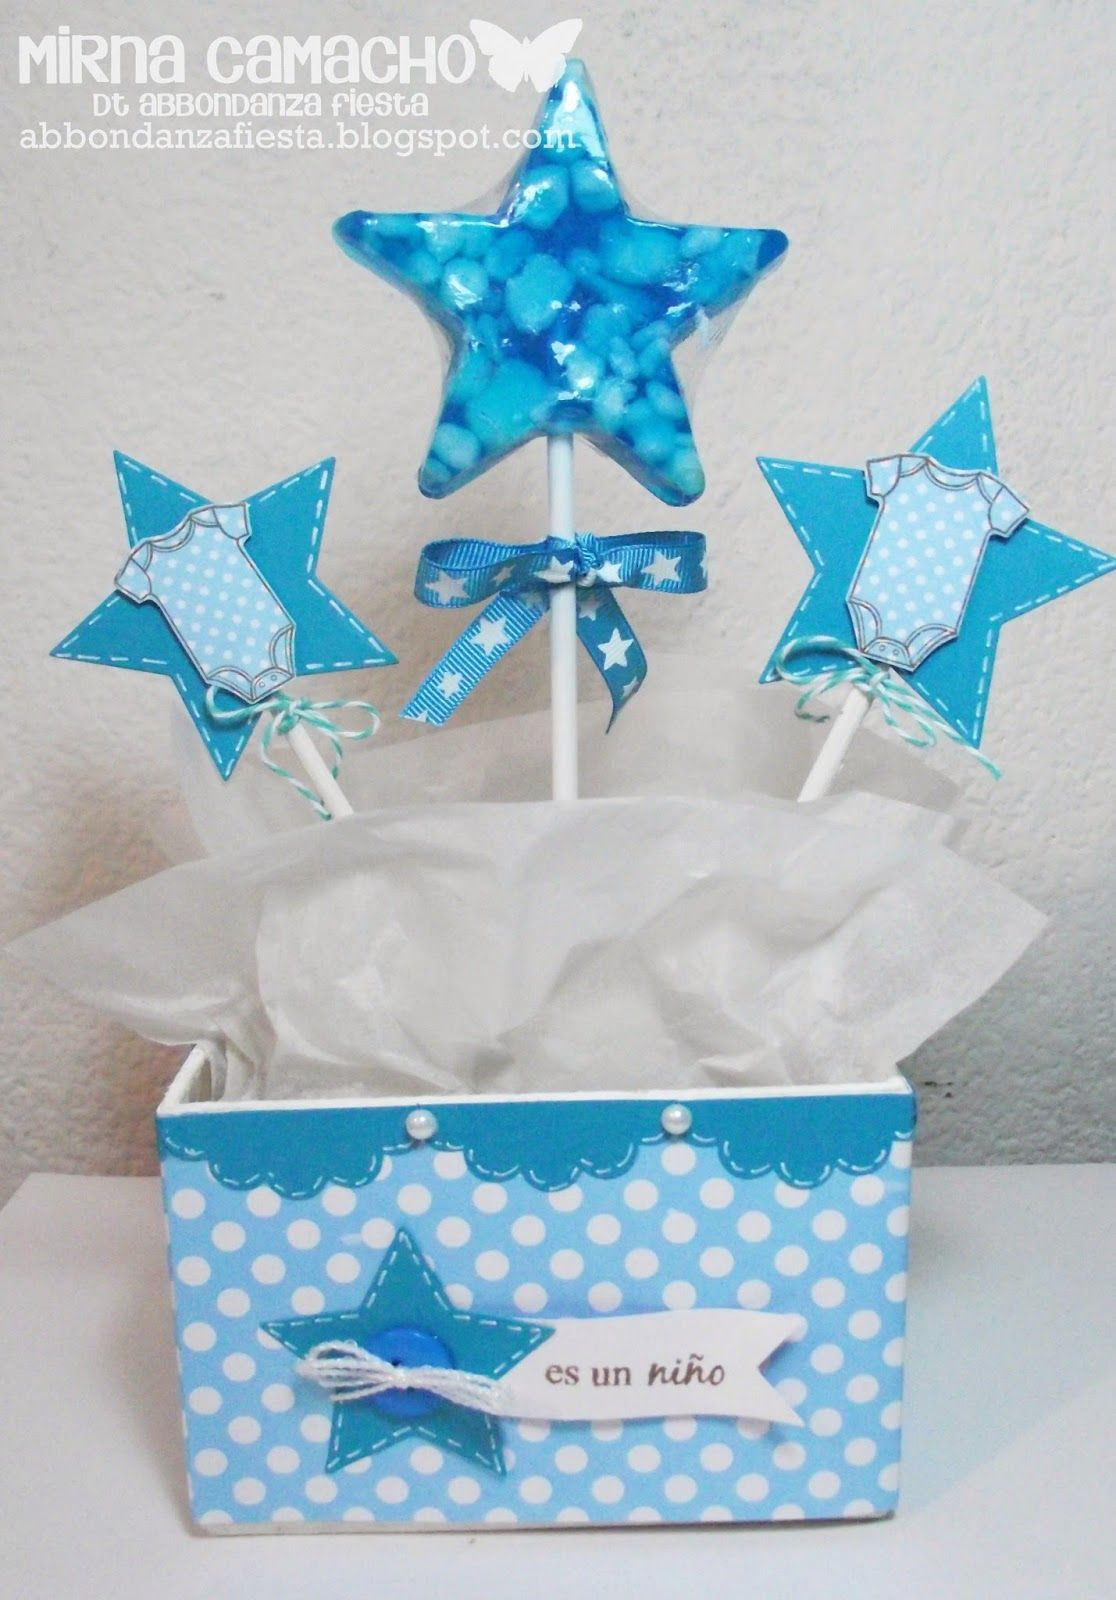 Centro de mesa para baby shower d ni o imagui bebes for Mesa baby shower nino